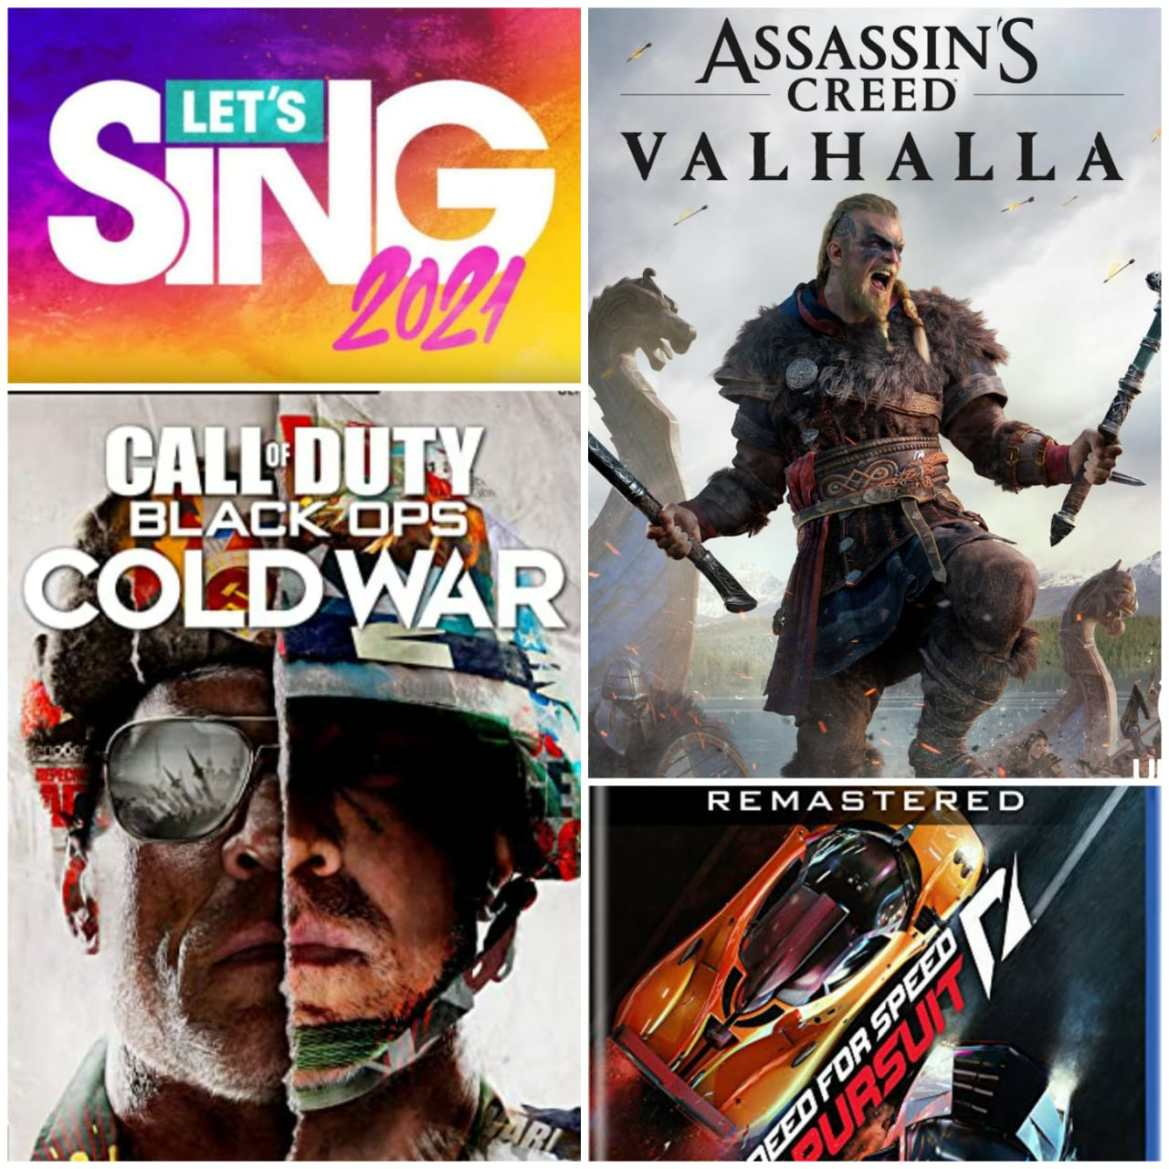 Reseña: Assassin's Creed: Valhalla, Call of Duty: Black Ops Cold War, Let's Sing 2021 y Need For Speed Hot Pursuit Remastered